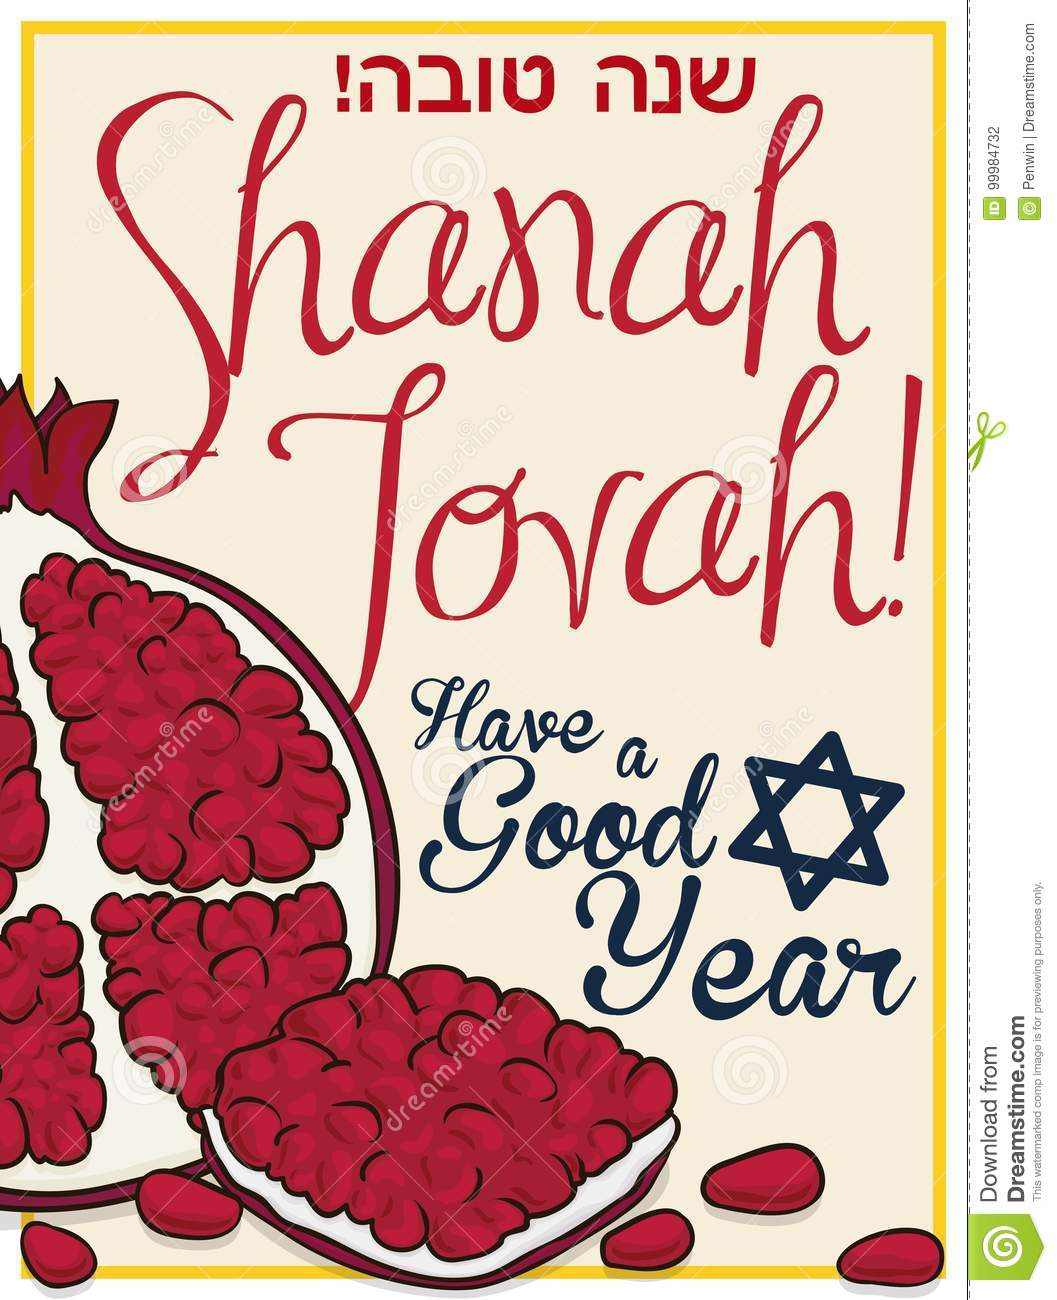 Delicious Pomegranate Sliced With Good Wishes For Jewish New Year ...